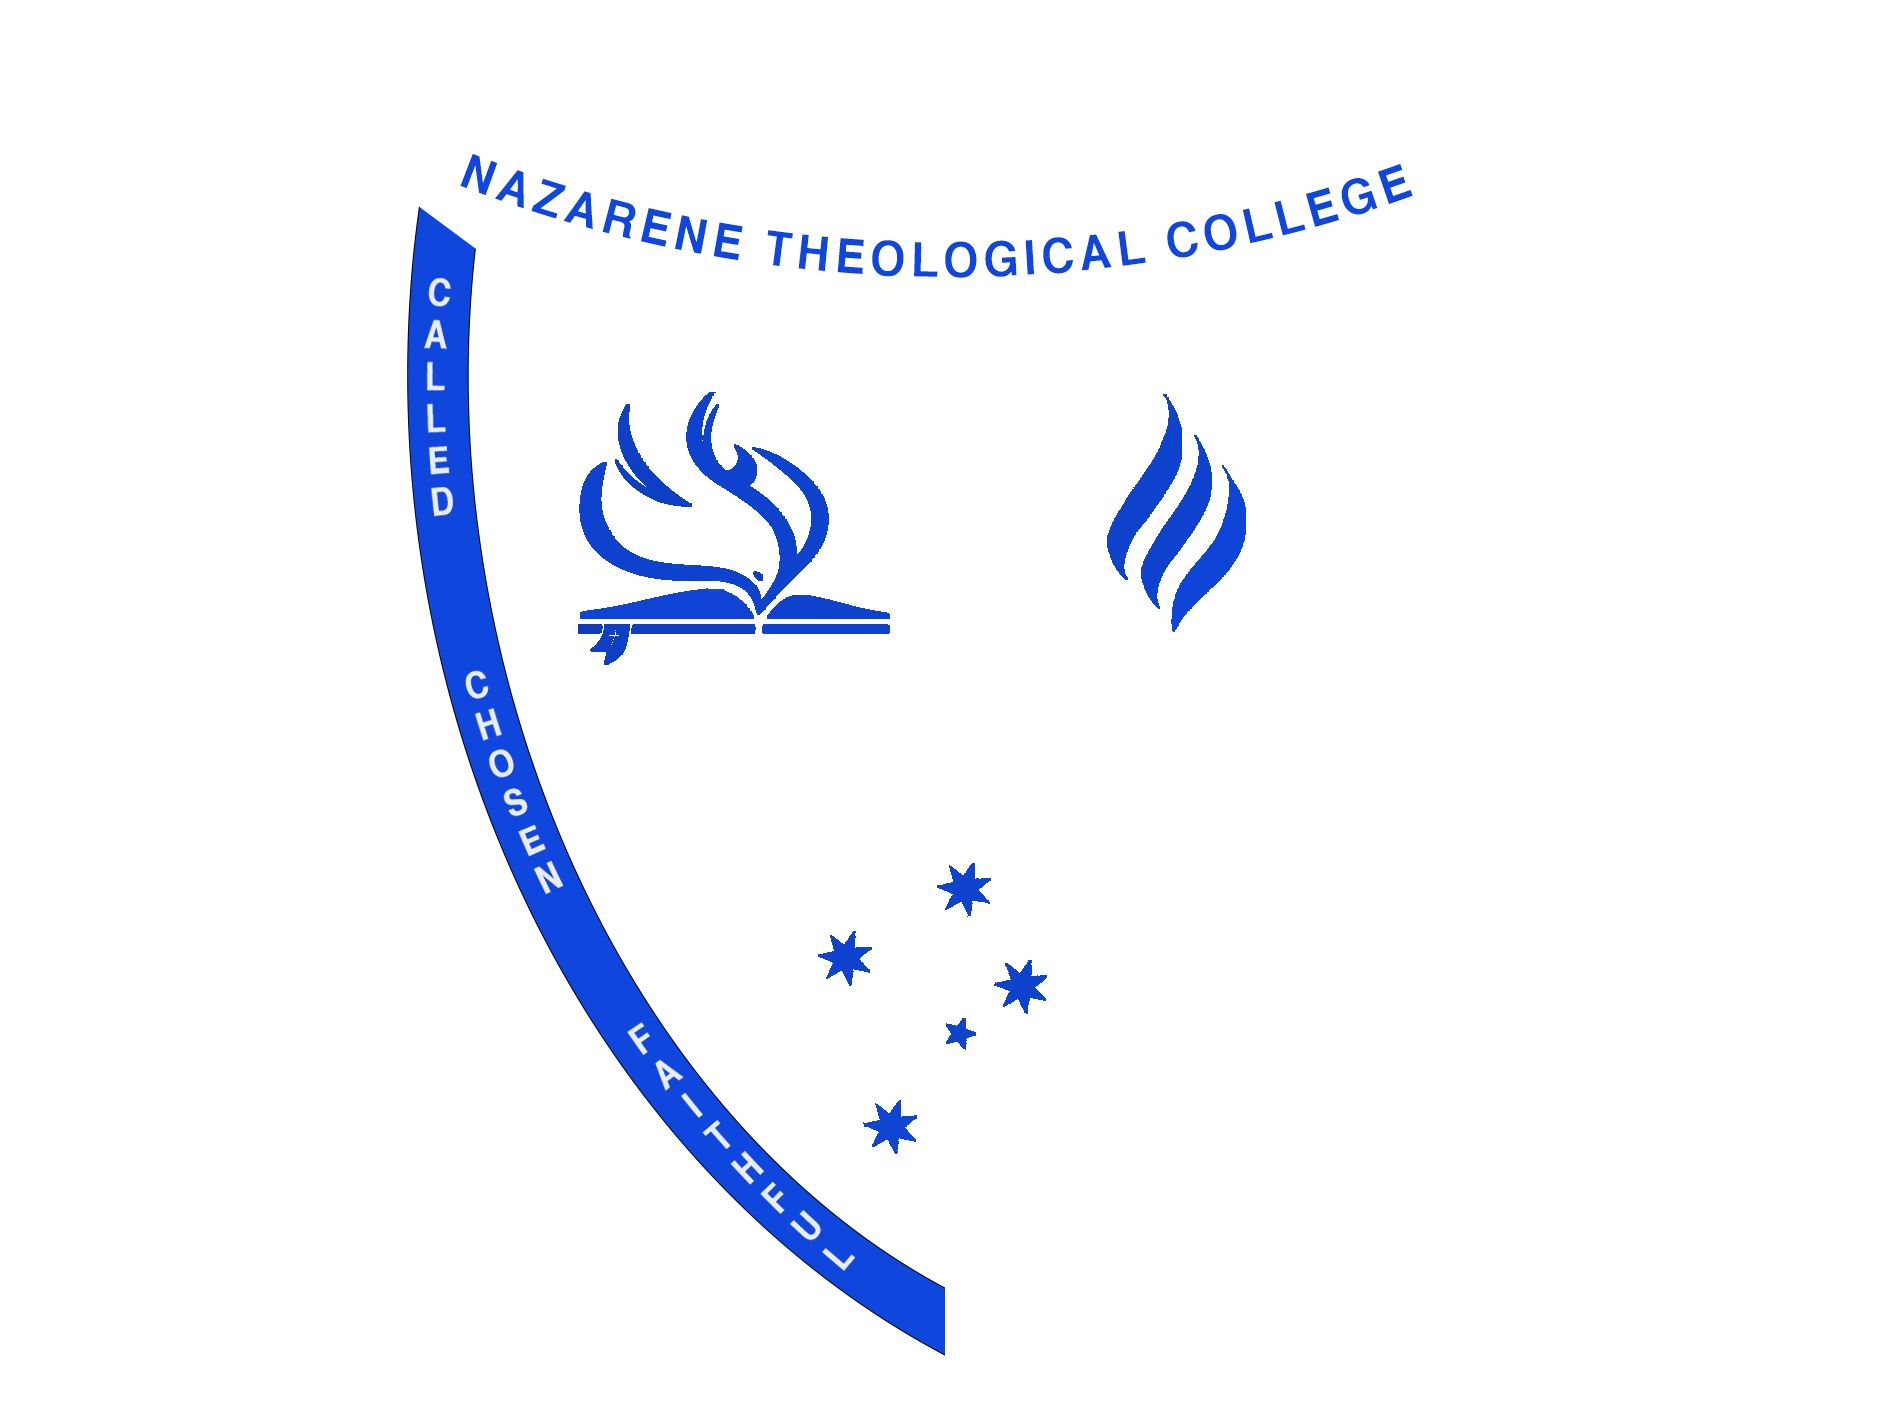 Nazarene Theological College (Sydney College of Divinity)